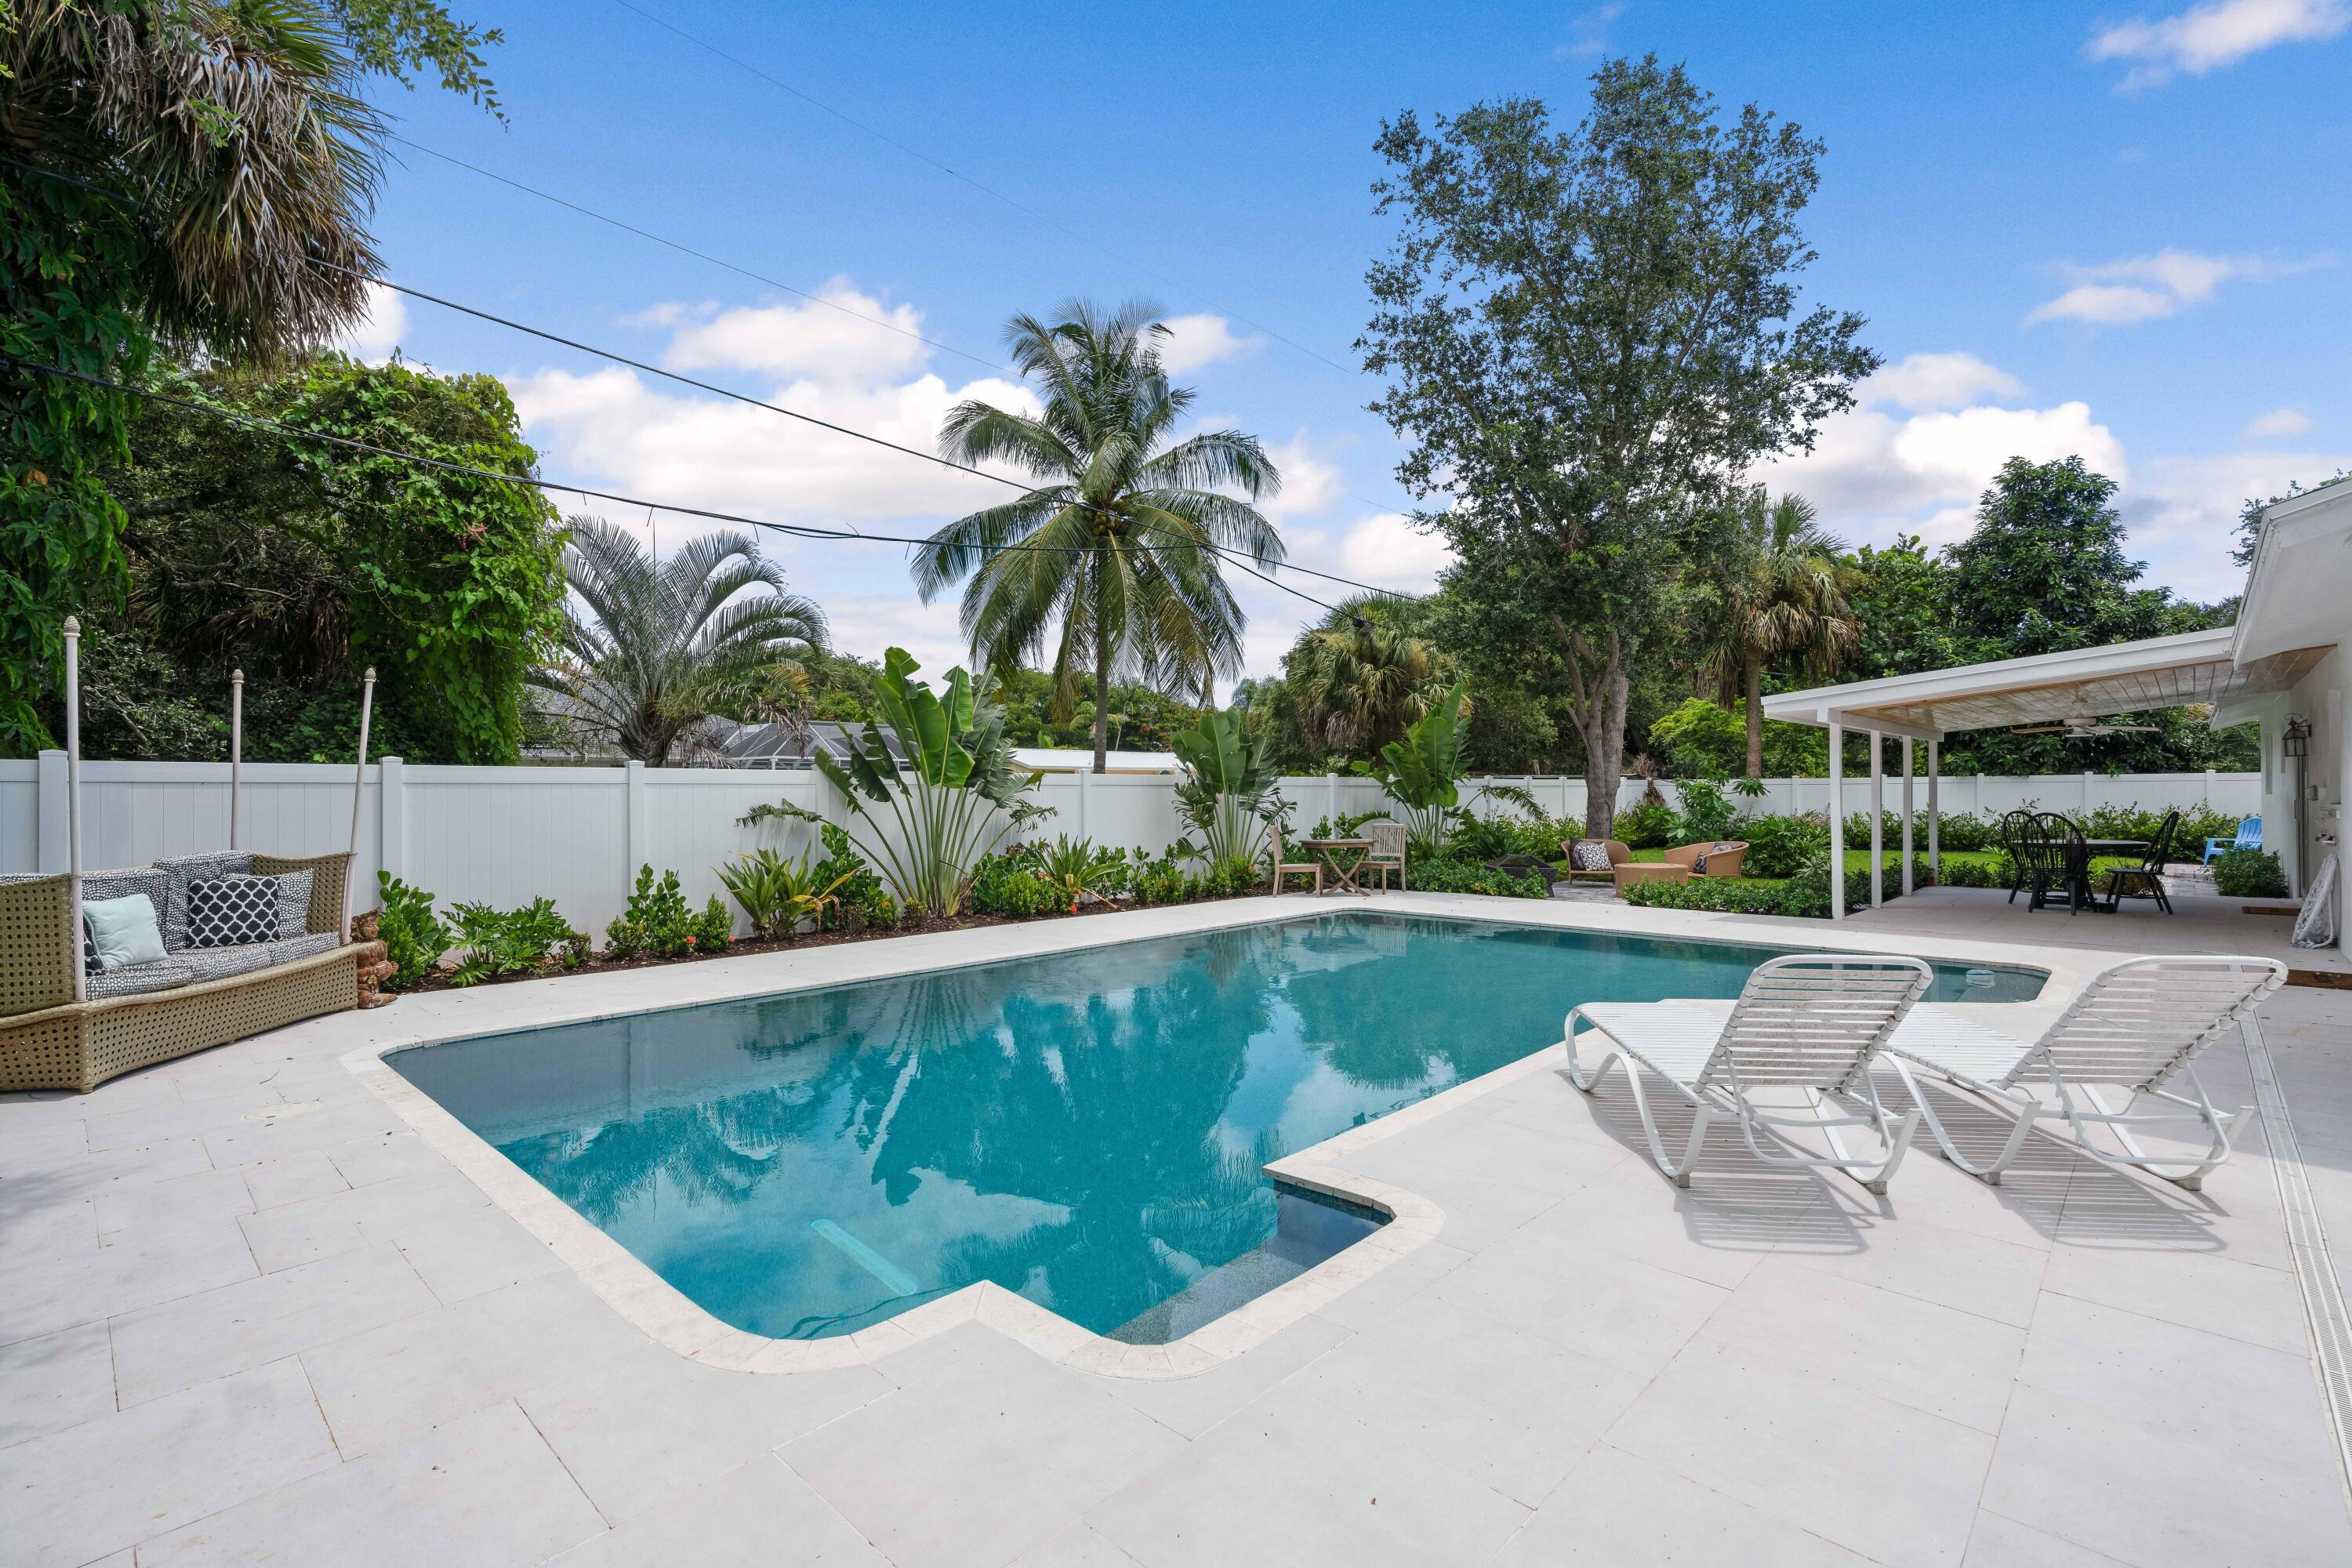 Available for two weeks - December 15 through January 1 for $5000, also available from April 10th on.      Entertaining is a breeze in this light and bright, beautifully renovated 3 bedroom, 2 bath house with pool and 2 car garage on an oversized lot. Close to Juno Beach. This home has a tropical backyard oasis. Come and enjoy this amazing opportunity to make this your own.   All of this located in close proximity to pristine beaches,  fine restaurants, entertainment, world class shopping and Palm Beach International Airport.